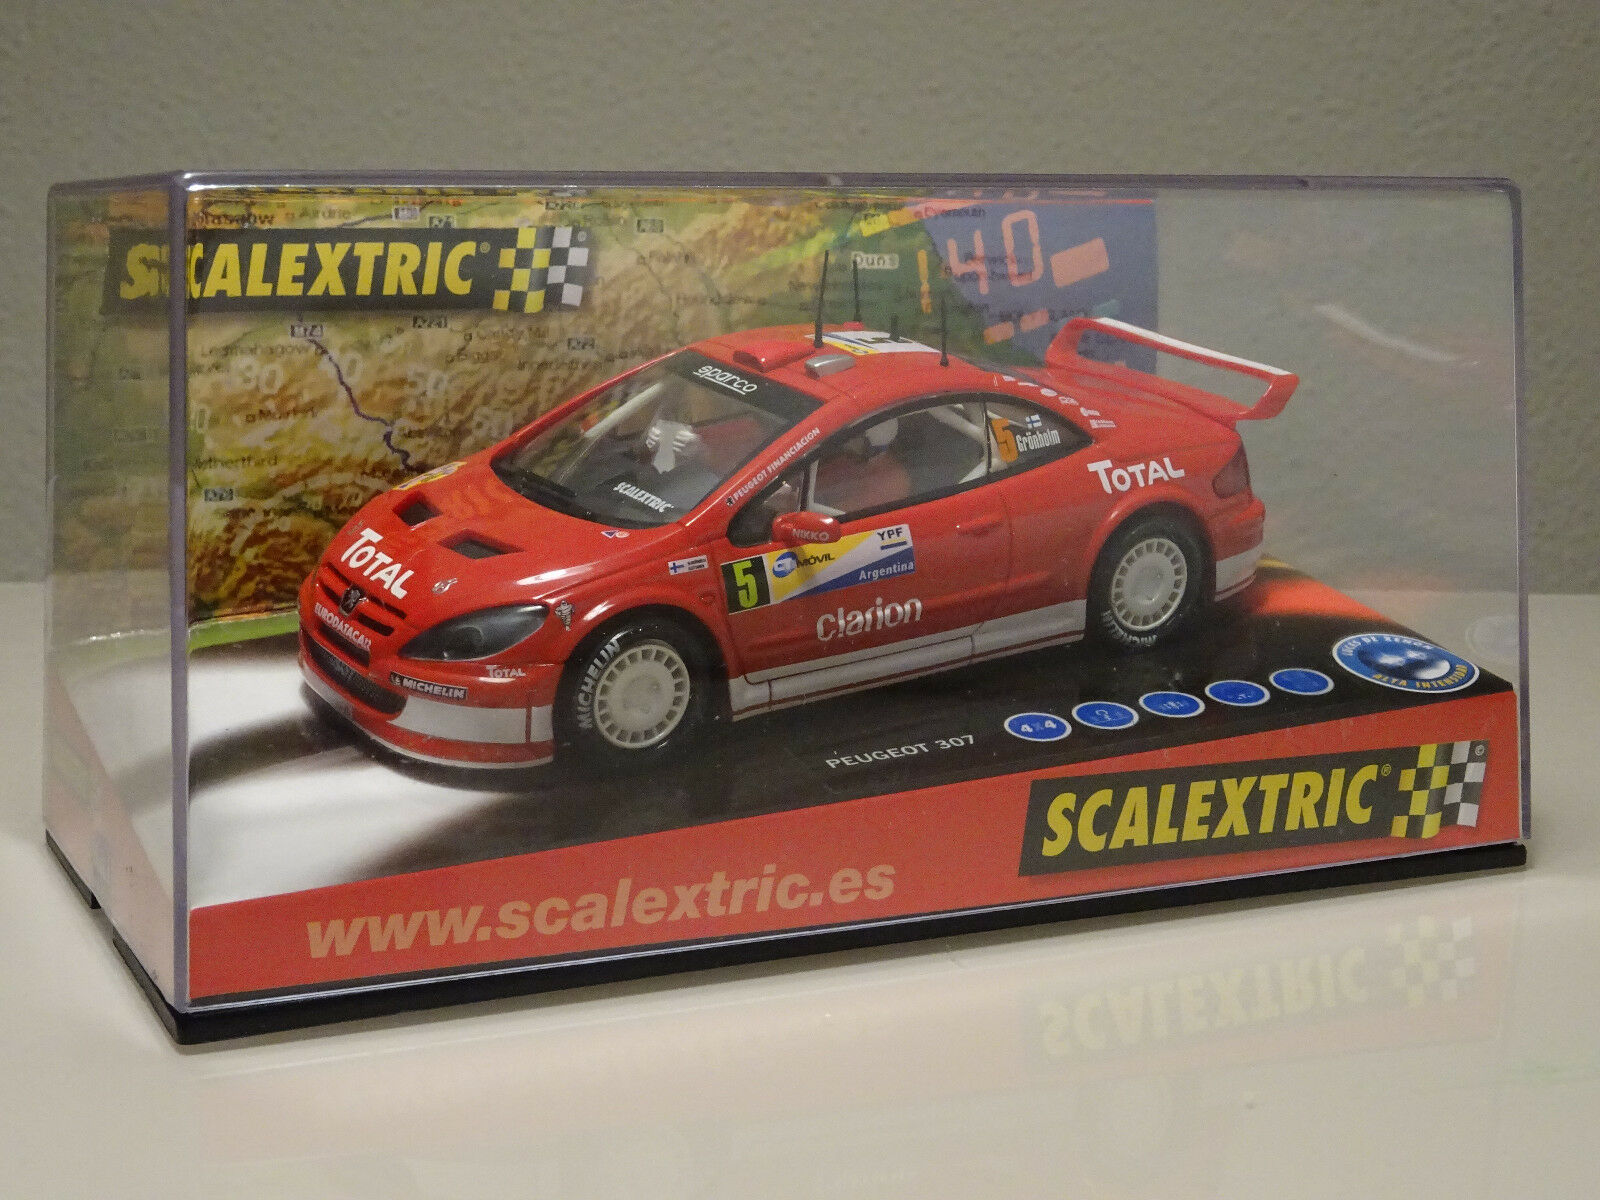 NUEVO A ESTRENAR COCHE SCALEXTRIC PEUGEOT 307 GRONHOLM SLOT FLY TEAMSLOT RALLY